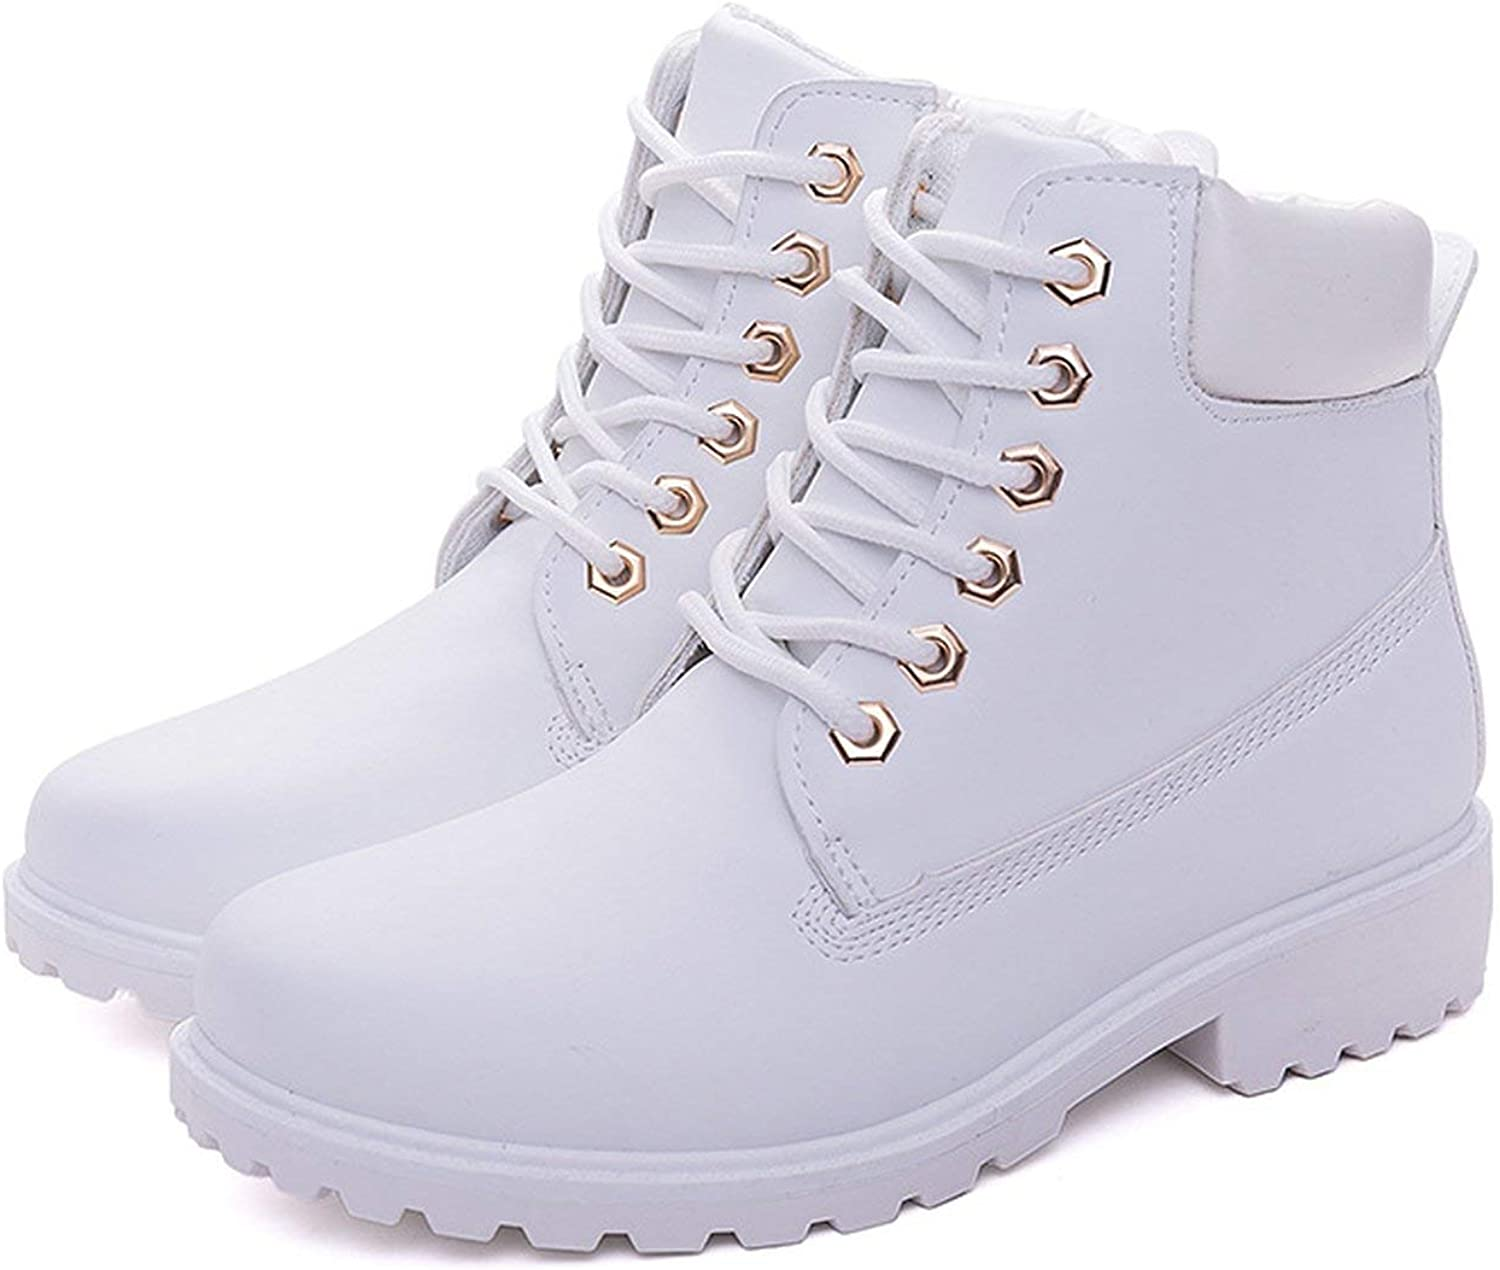 Winter Boots Fur Plush Sneakers Women Snow Boots Women lace up Ankle Boots,Green no Fur,6.5